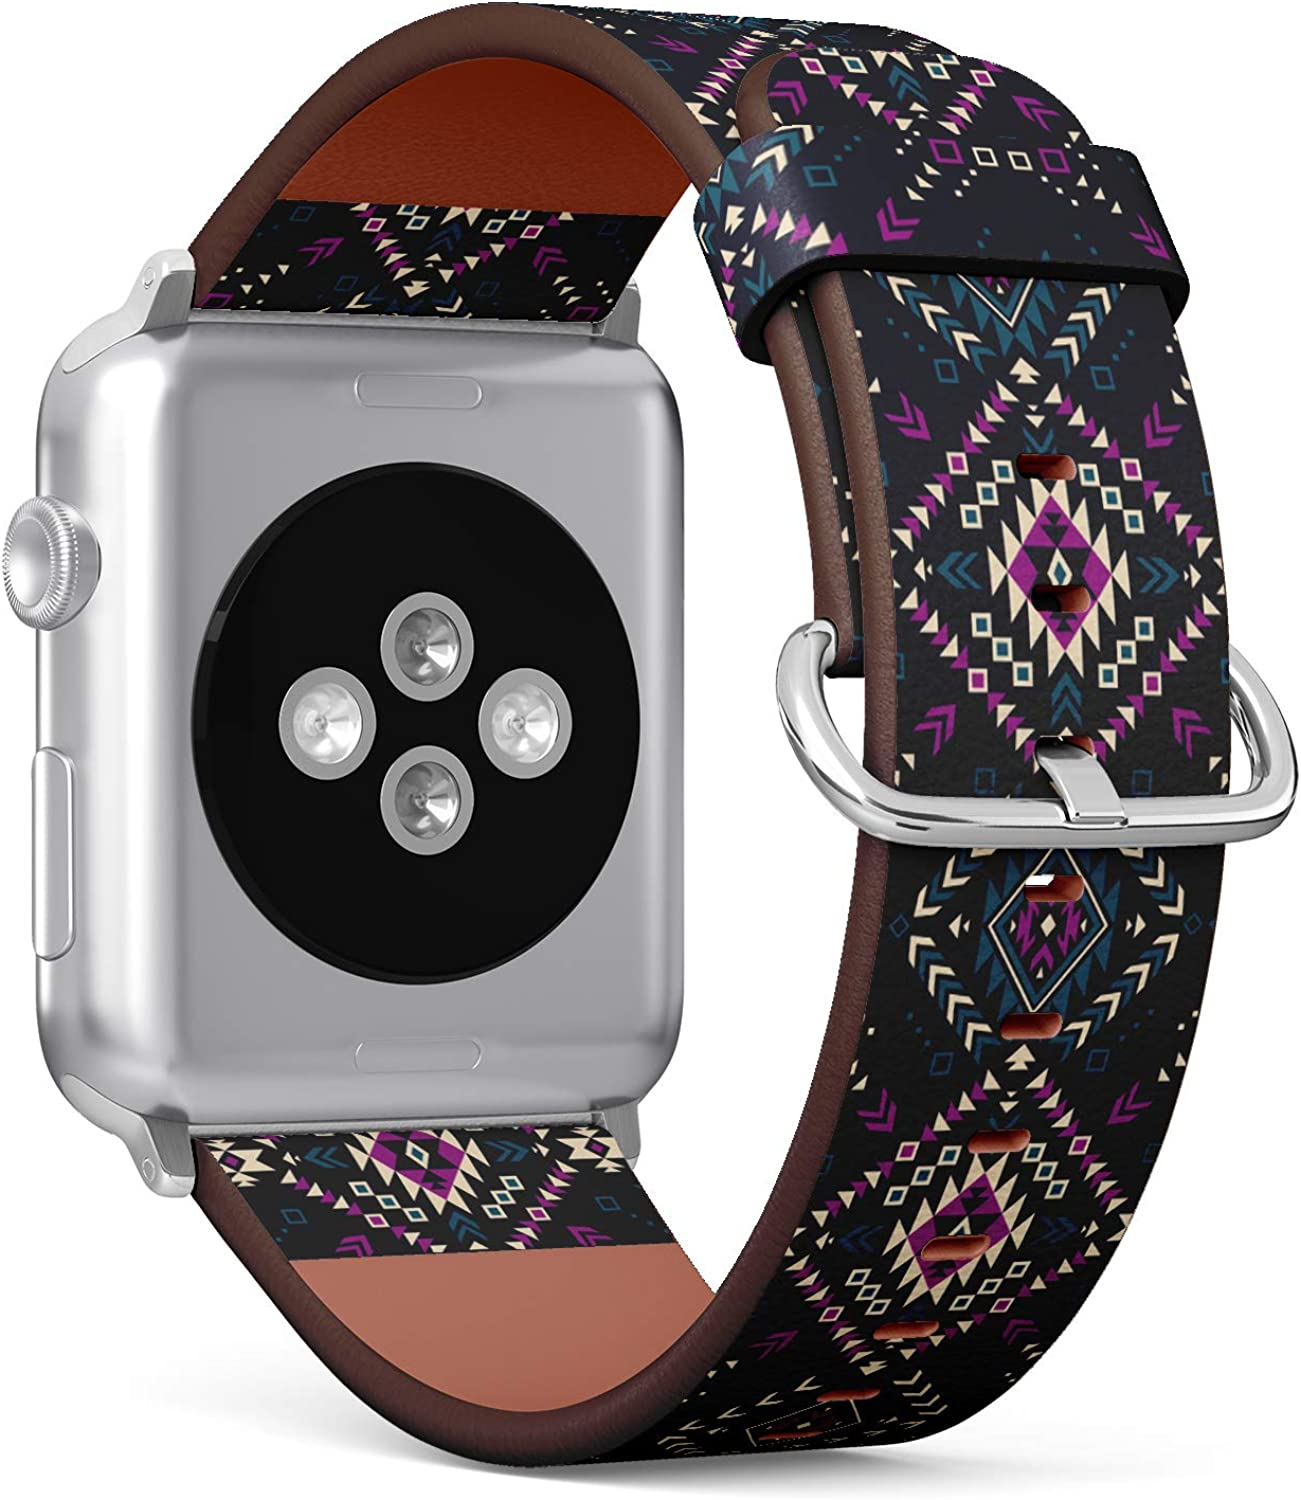 (Tribal Navajo Pattern with Aztec Fancy Abstract Geometric Art) Patterned Leather Wristband Strap for Apple Watch Series 4/3/2/1 gen,Replacement for iWatch 38mm / 40mm Bands